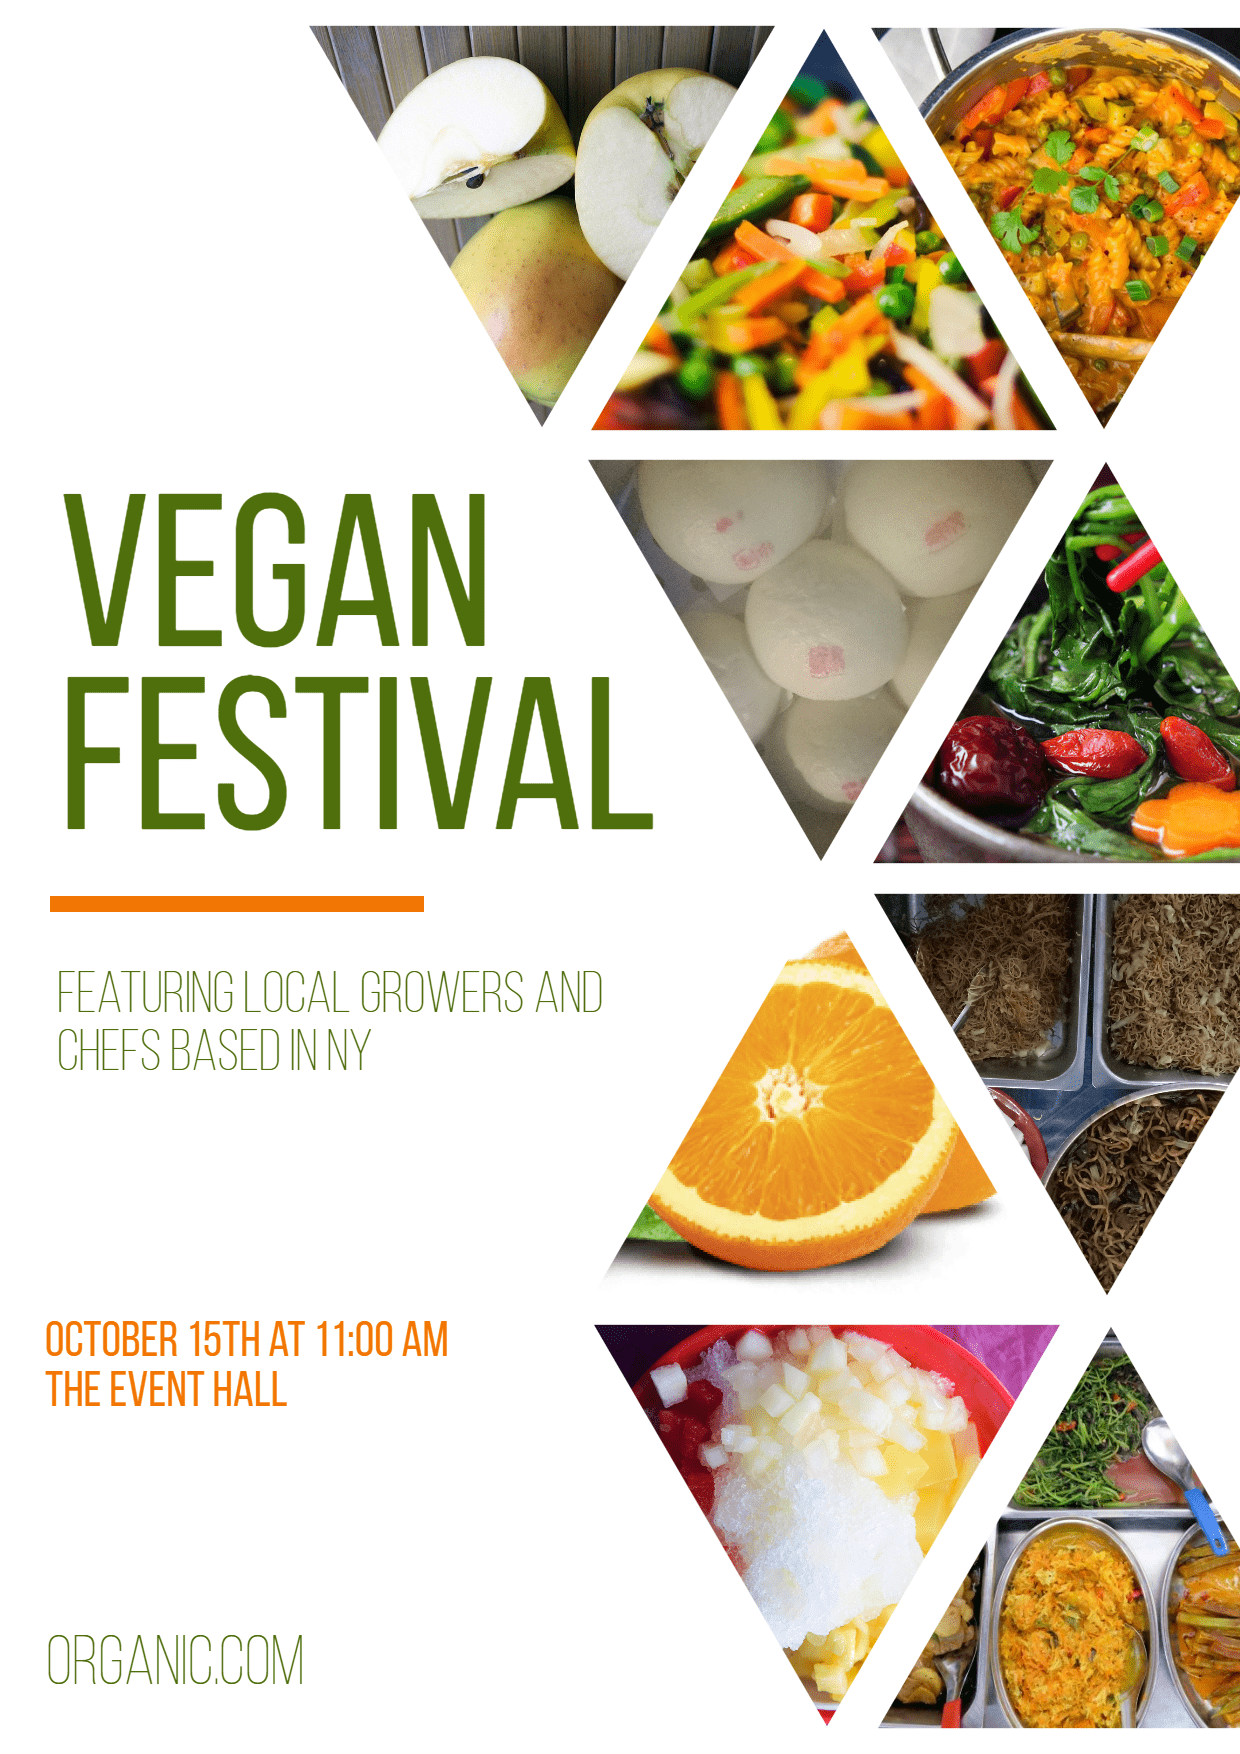 Business,                Poster,                Festival,                Vegan,                Food,                White,                Black,                Yellow,                 Free Image